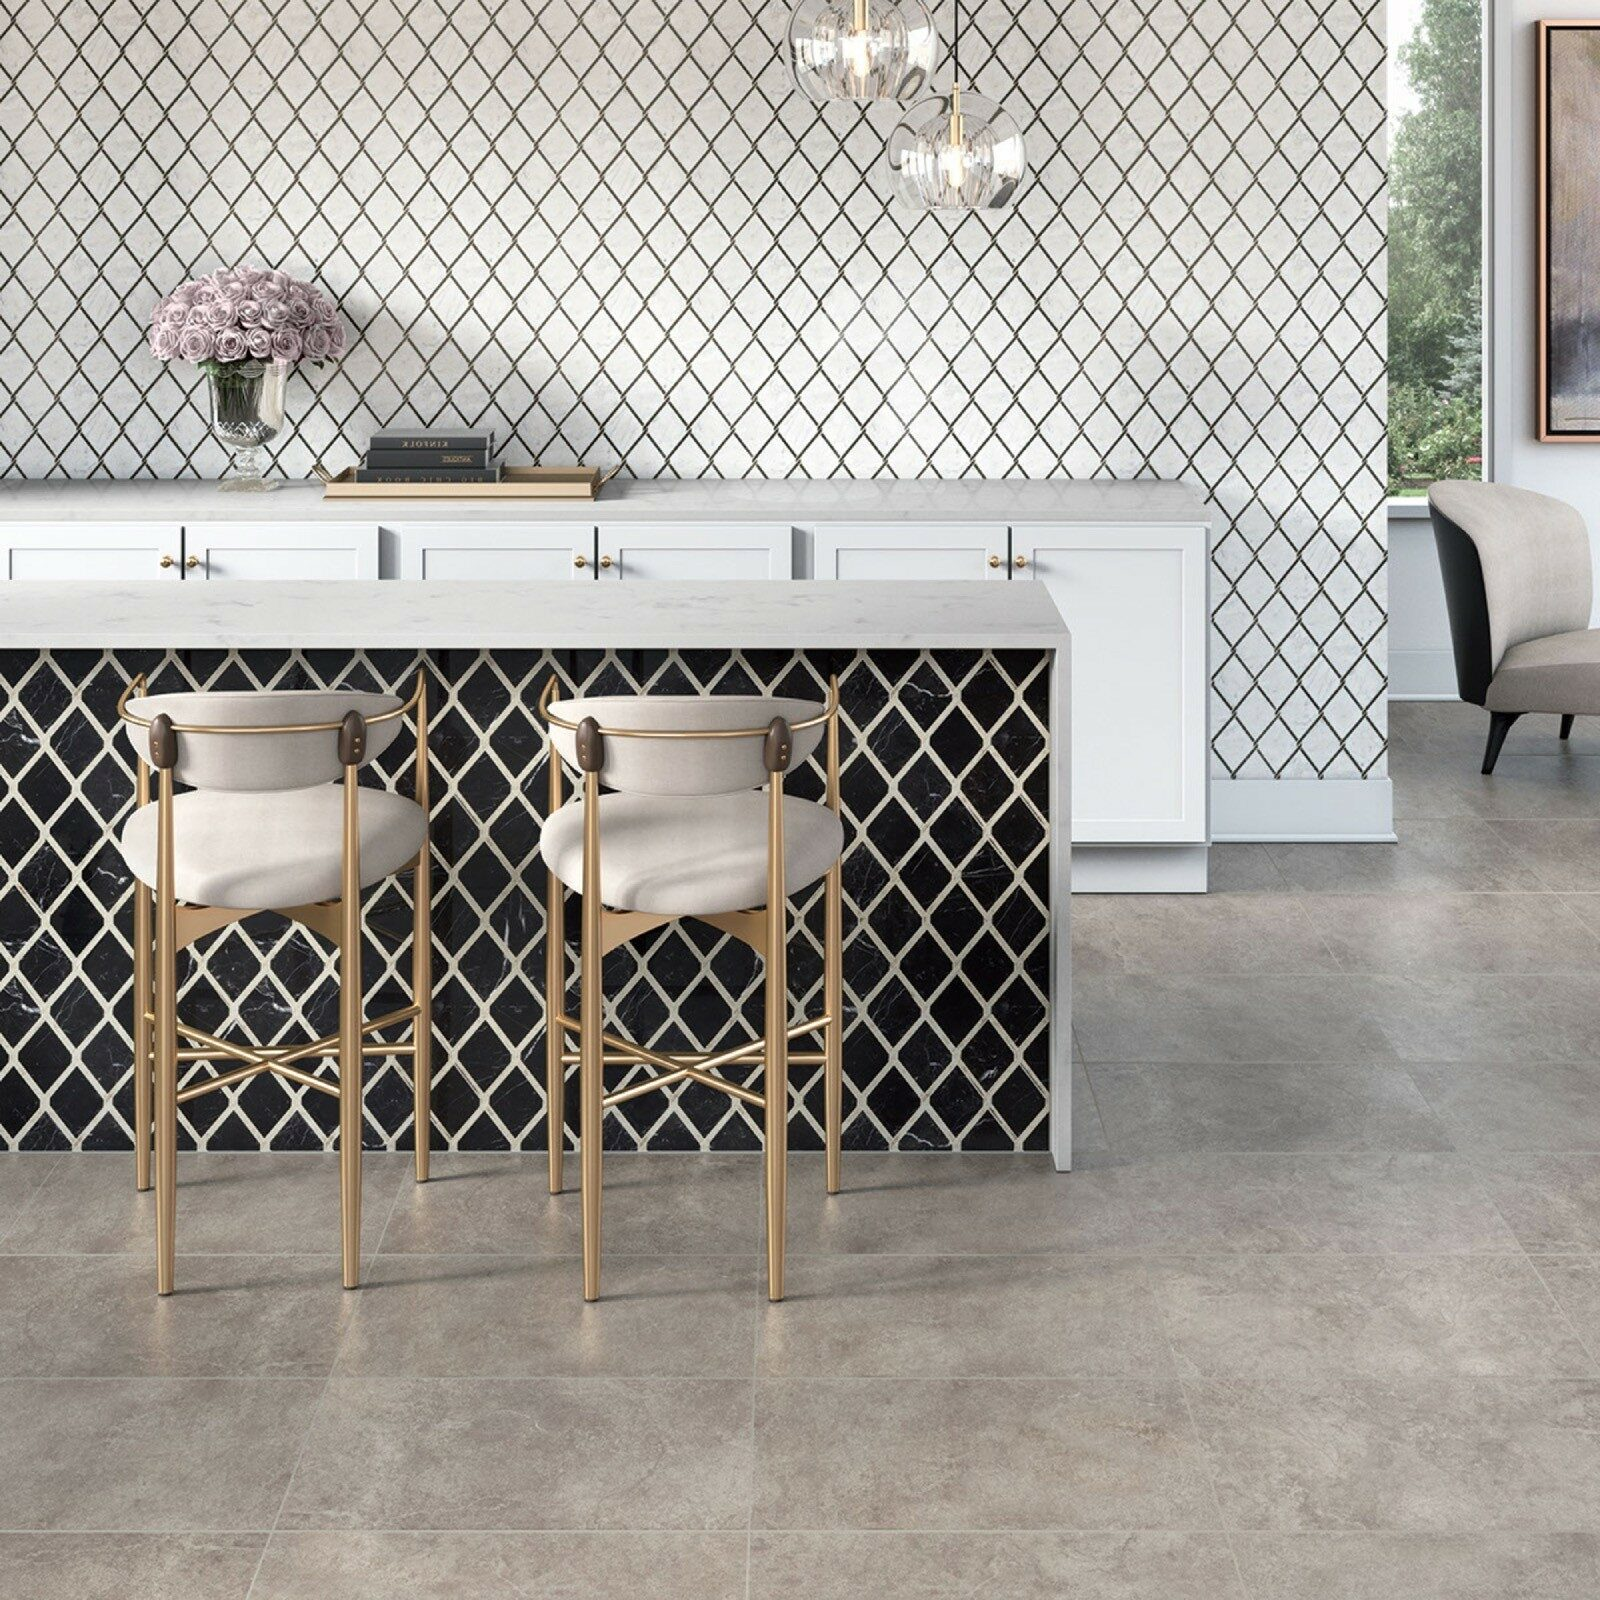 daltile | Total Flooring Source